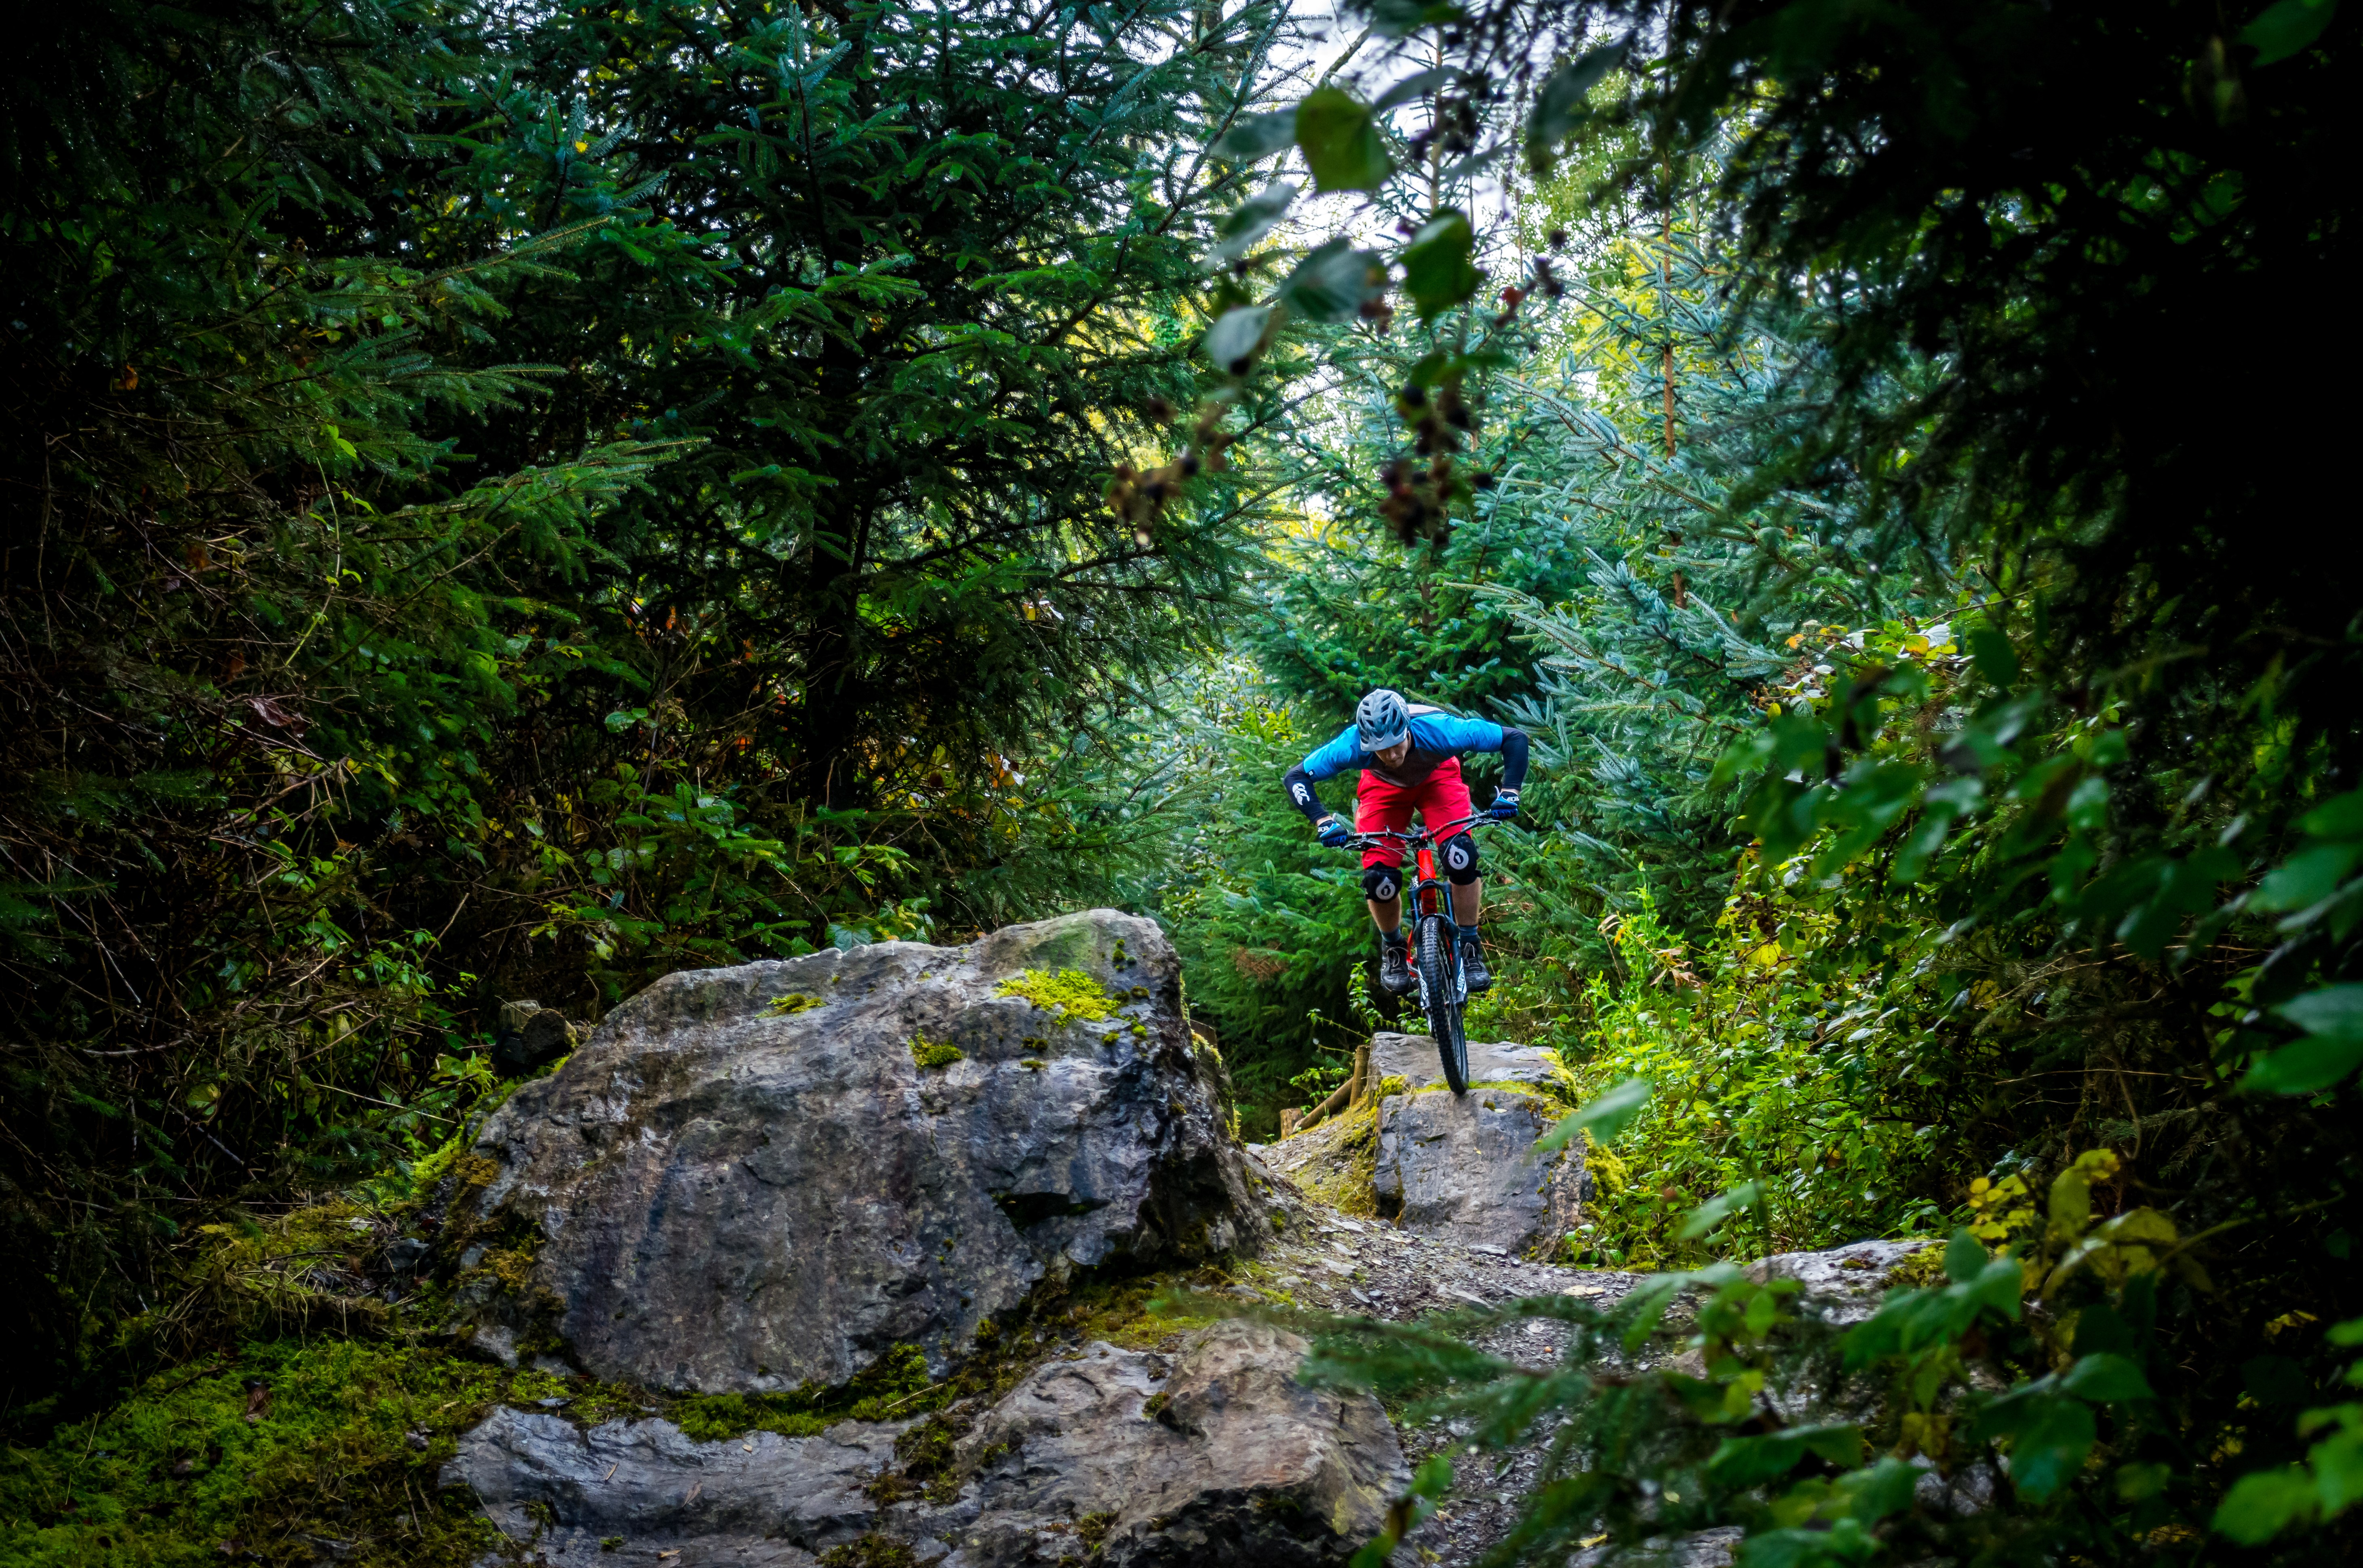 d15c6e77762 Update on plans for chairlift-serviced bike park in Aberdeenshire - MBR